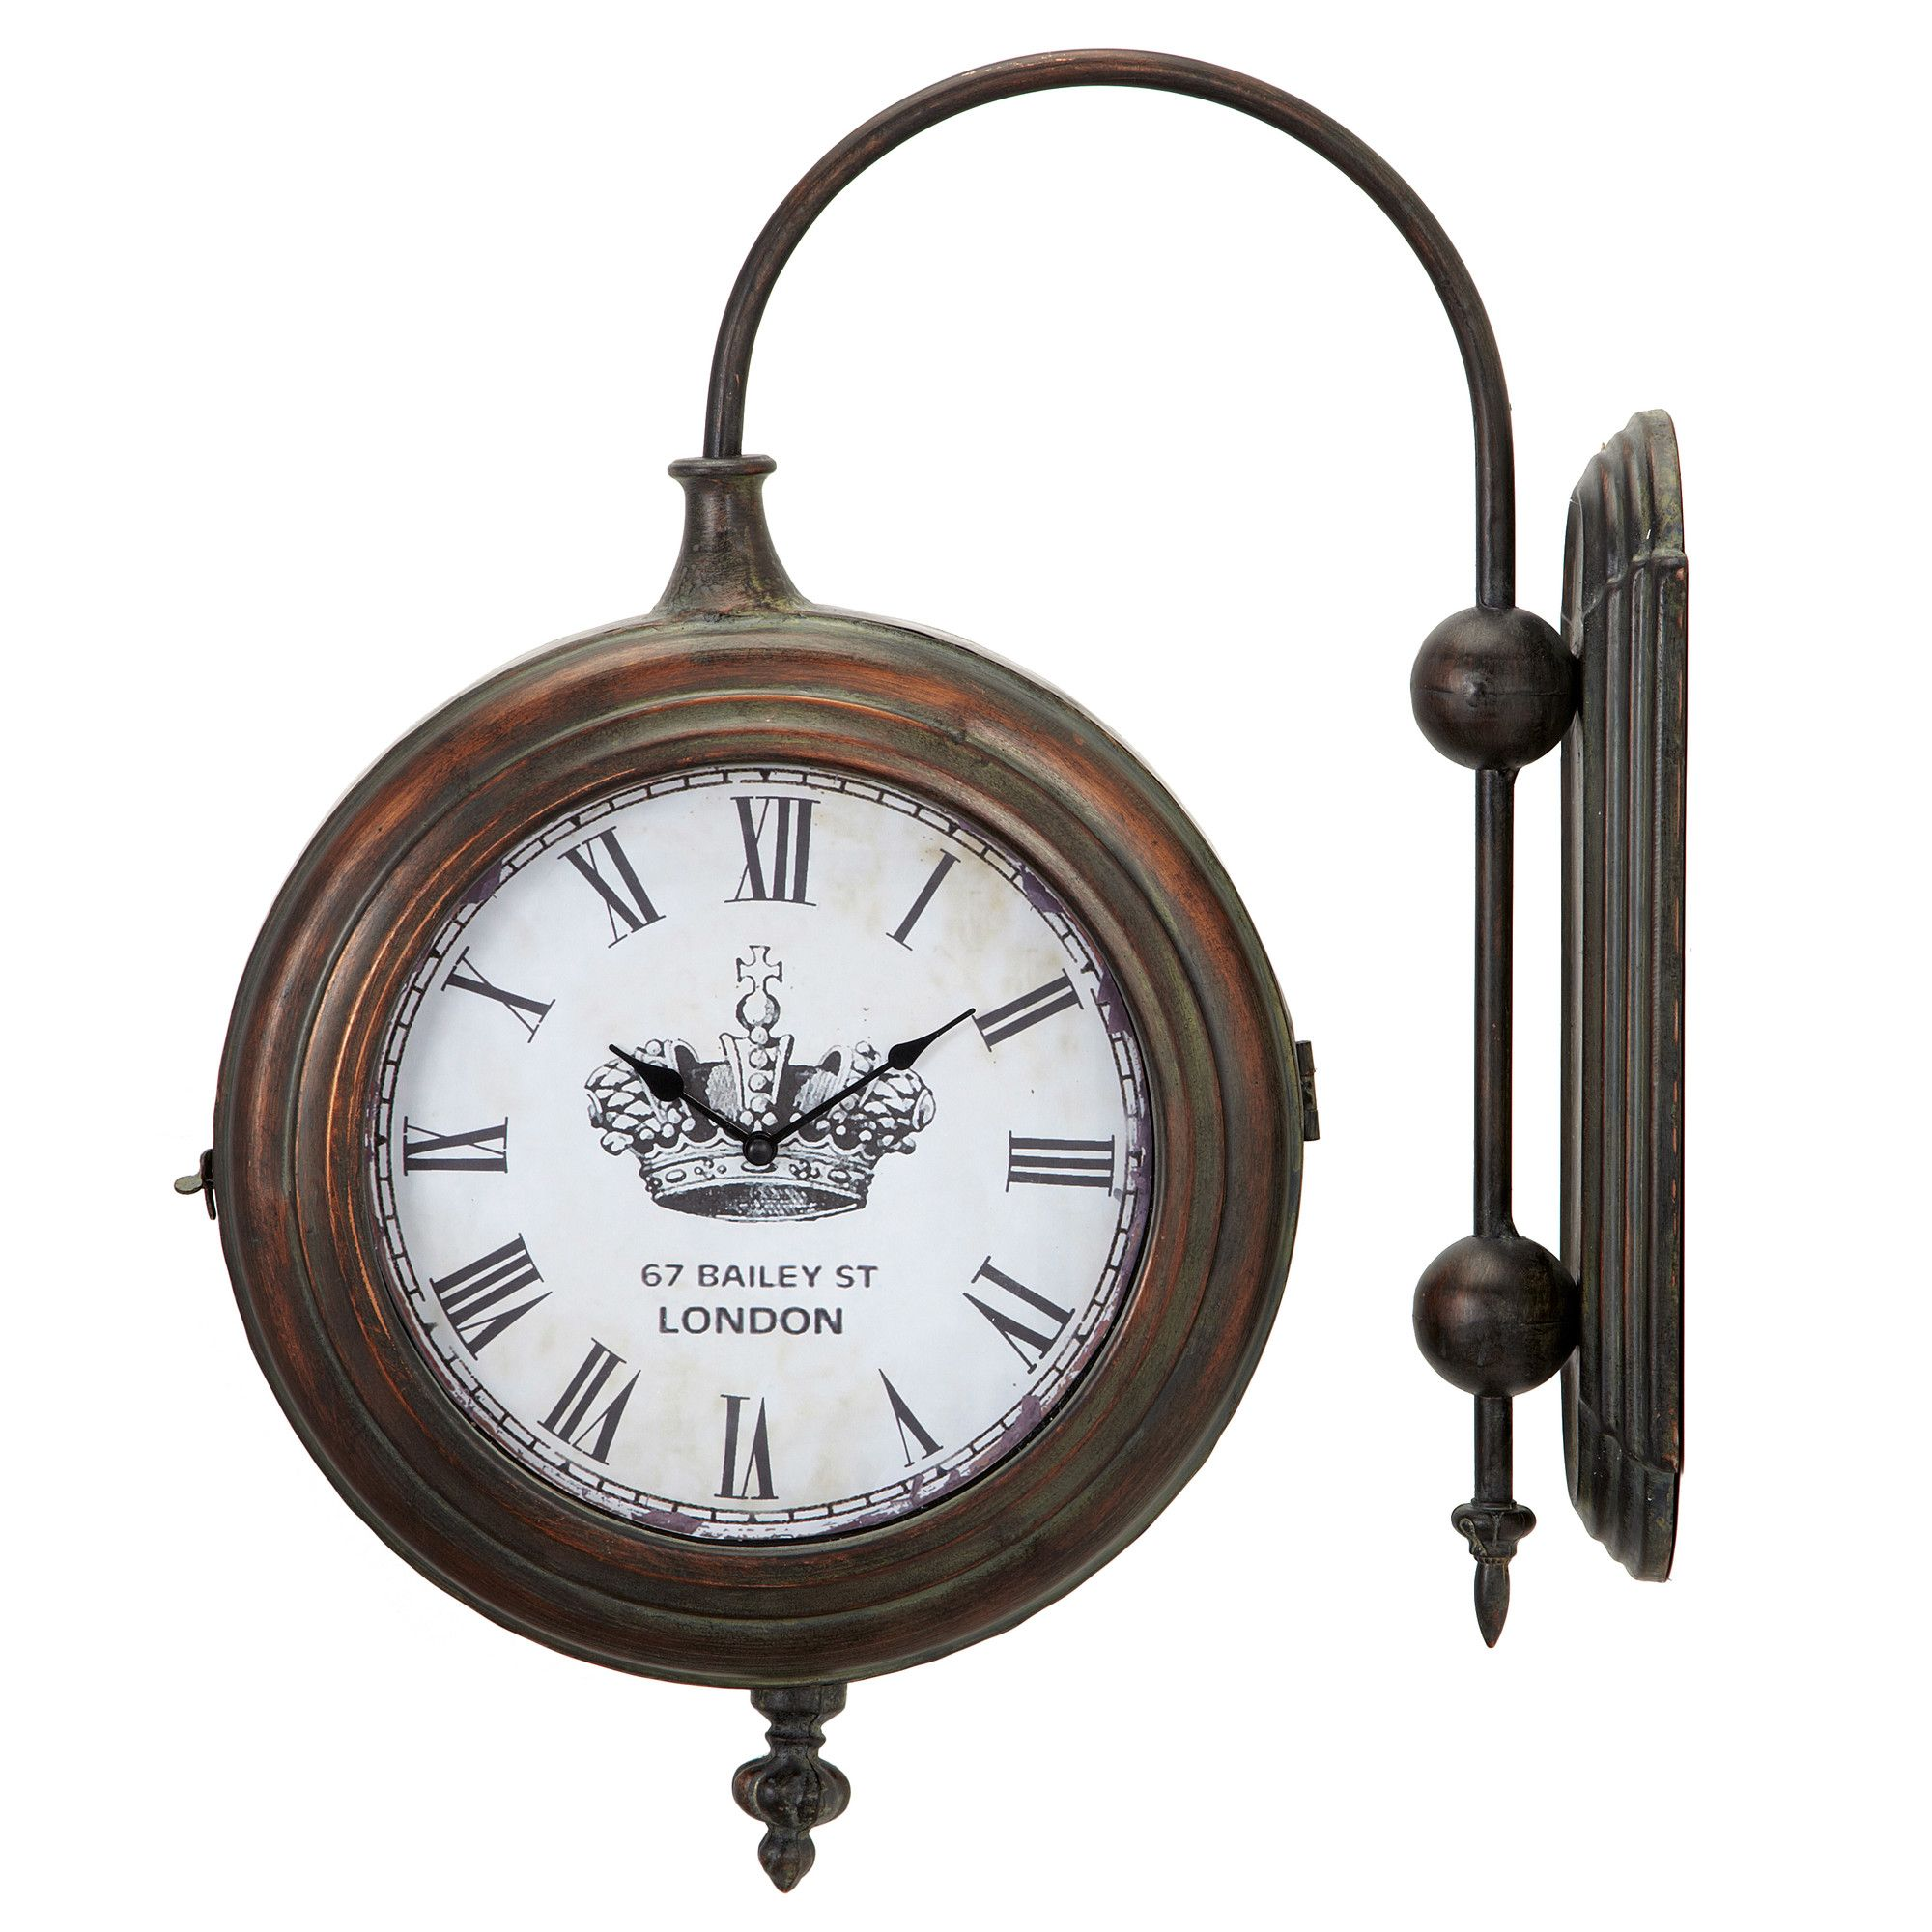 Bombay heritage winston train station wall clock clocks bombay heritage winston train station wall clock clocks wallclock walldecor homedecor amipublicfo Image collections